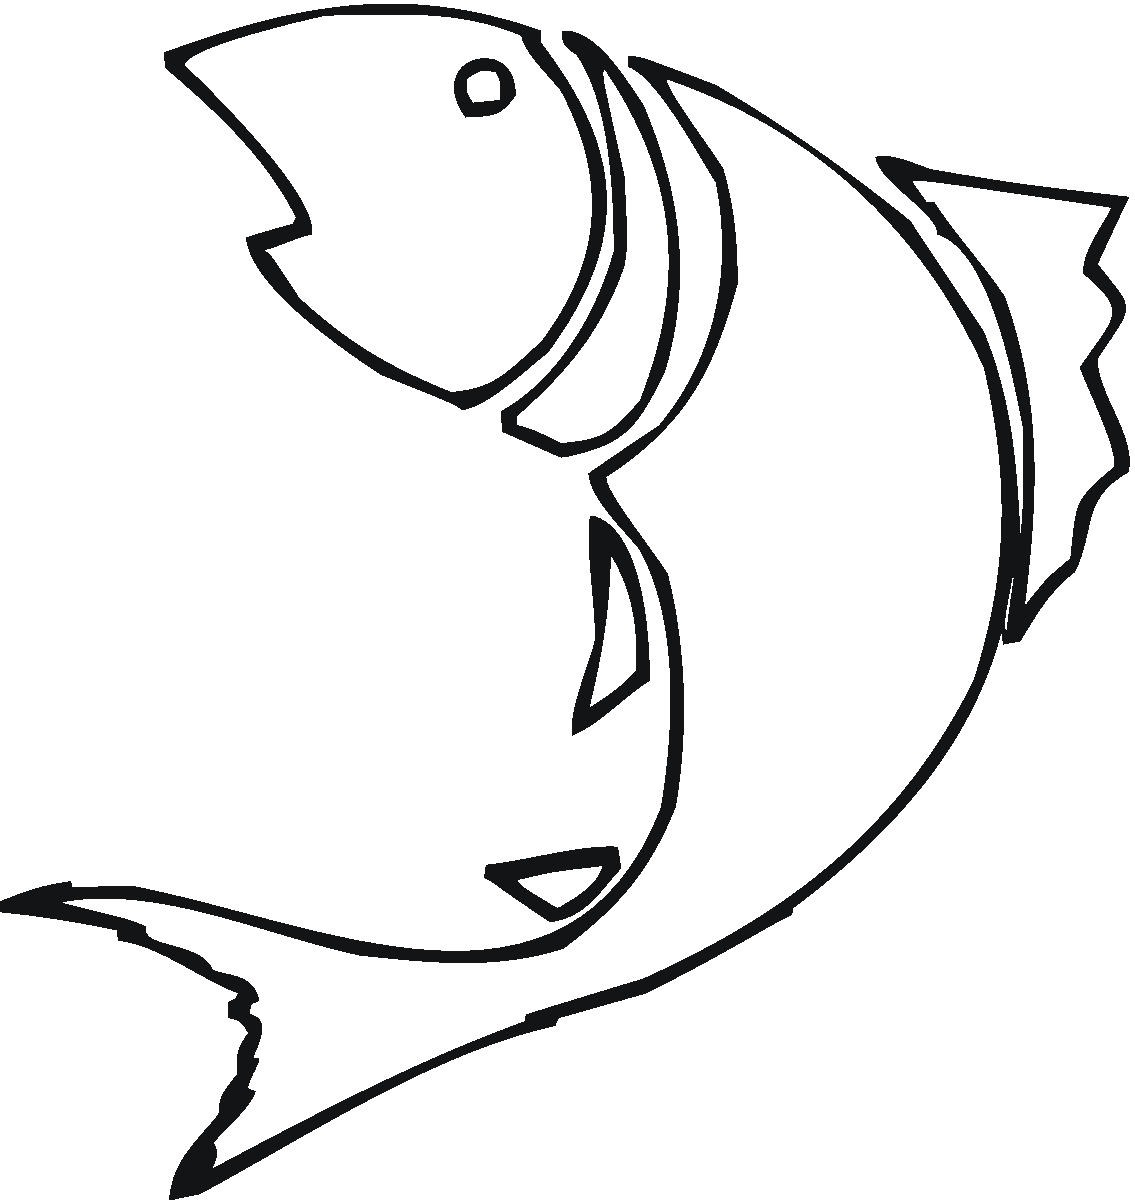 Drawing Lines Using Svg : Line drawing of a fish clipart best